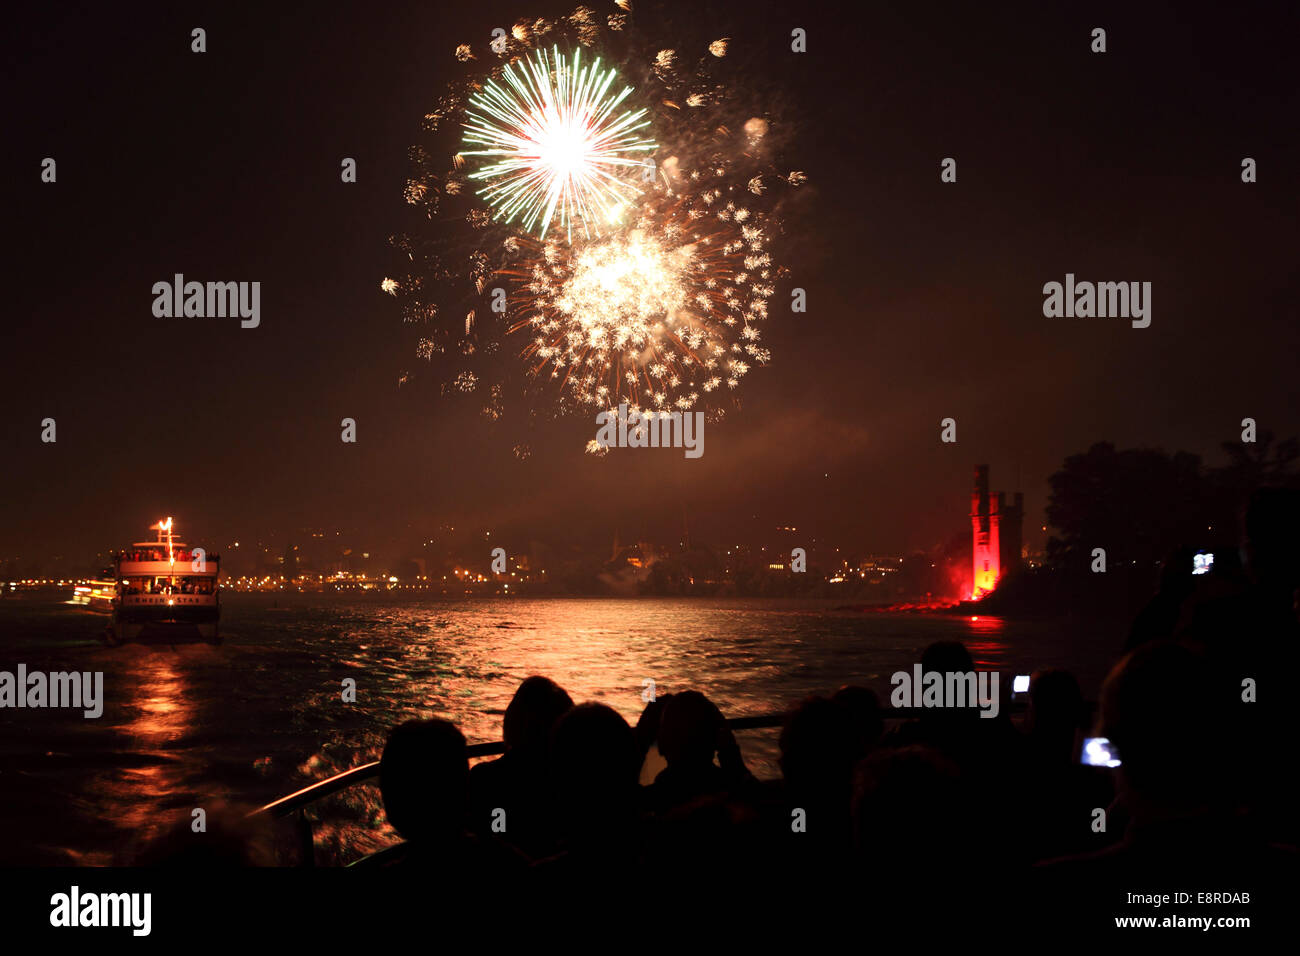 Fireworks over the River Rhine during the 'Rhein in Flammen' ('Rhine in Flames') festival in Germany. - Stock Image